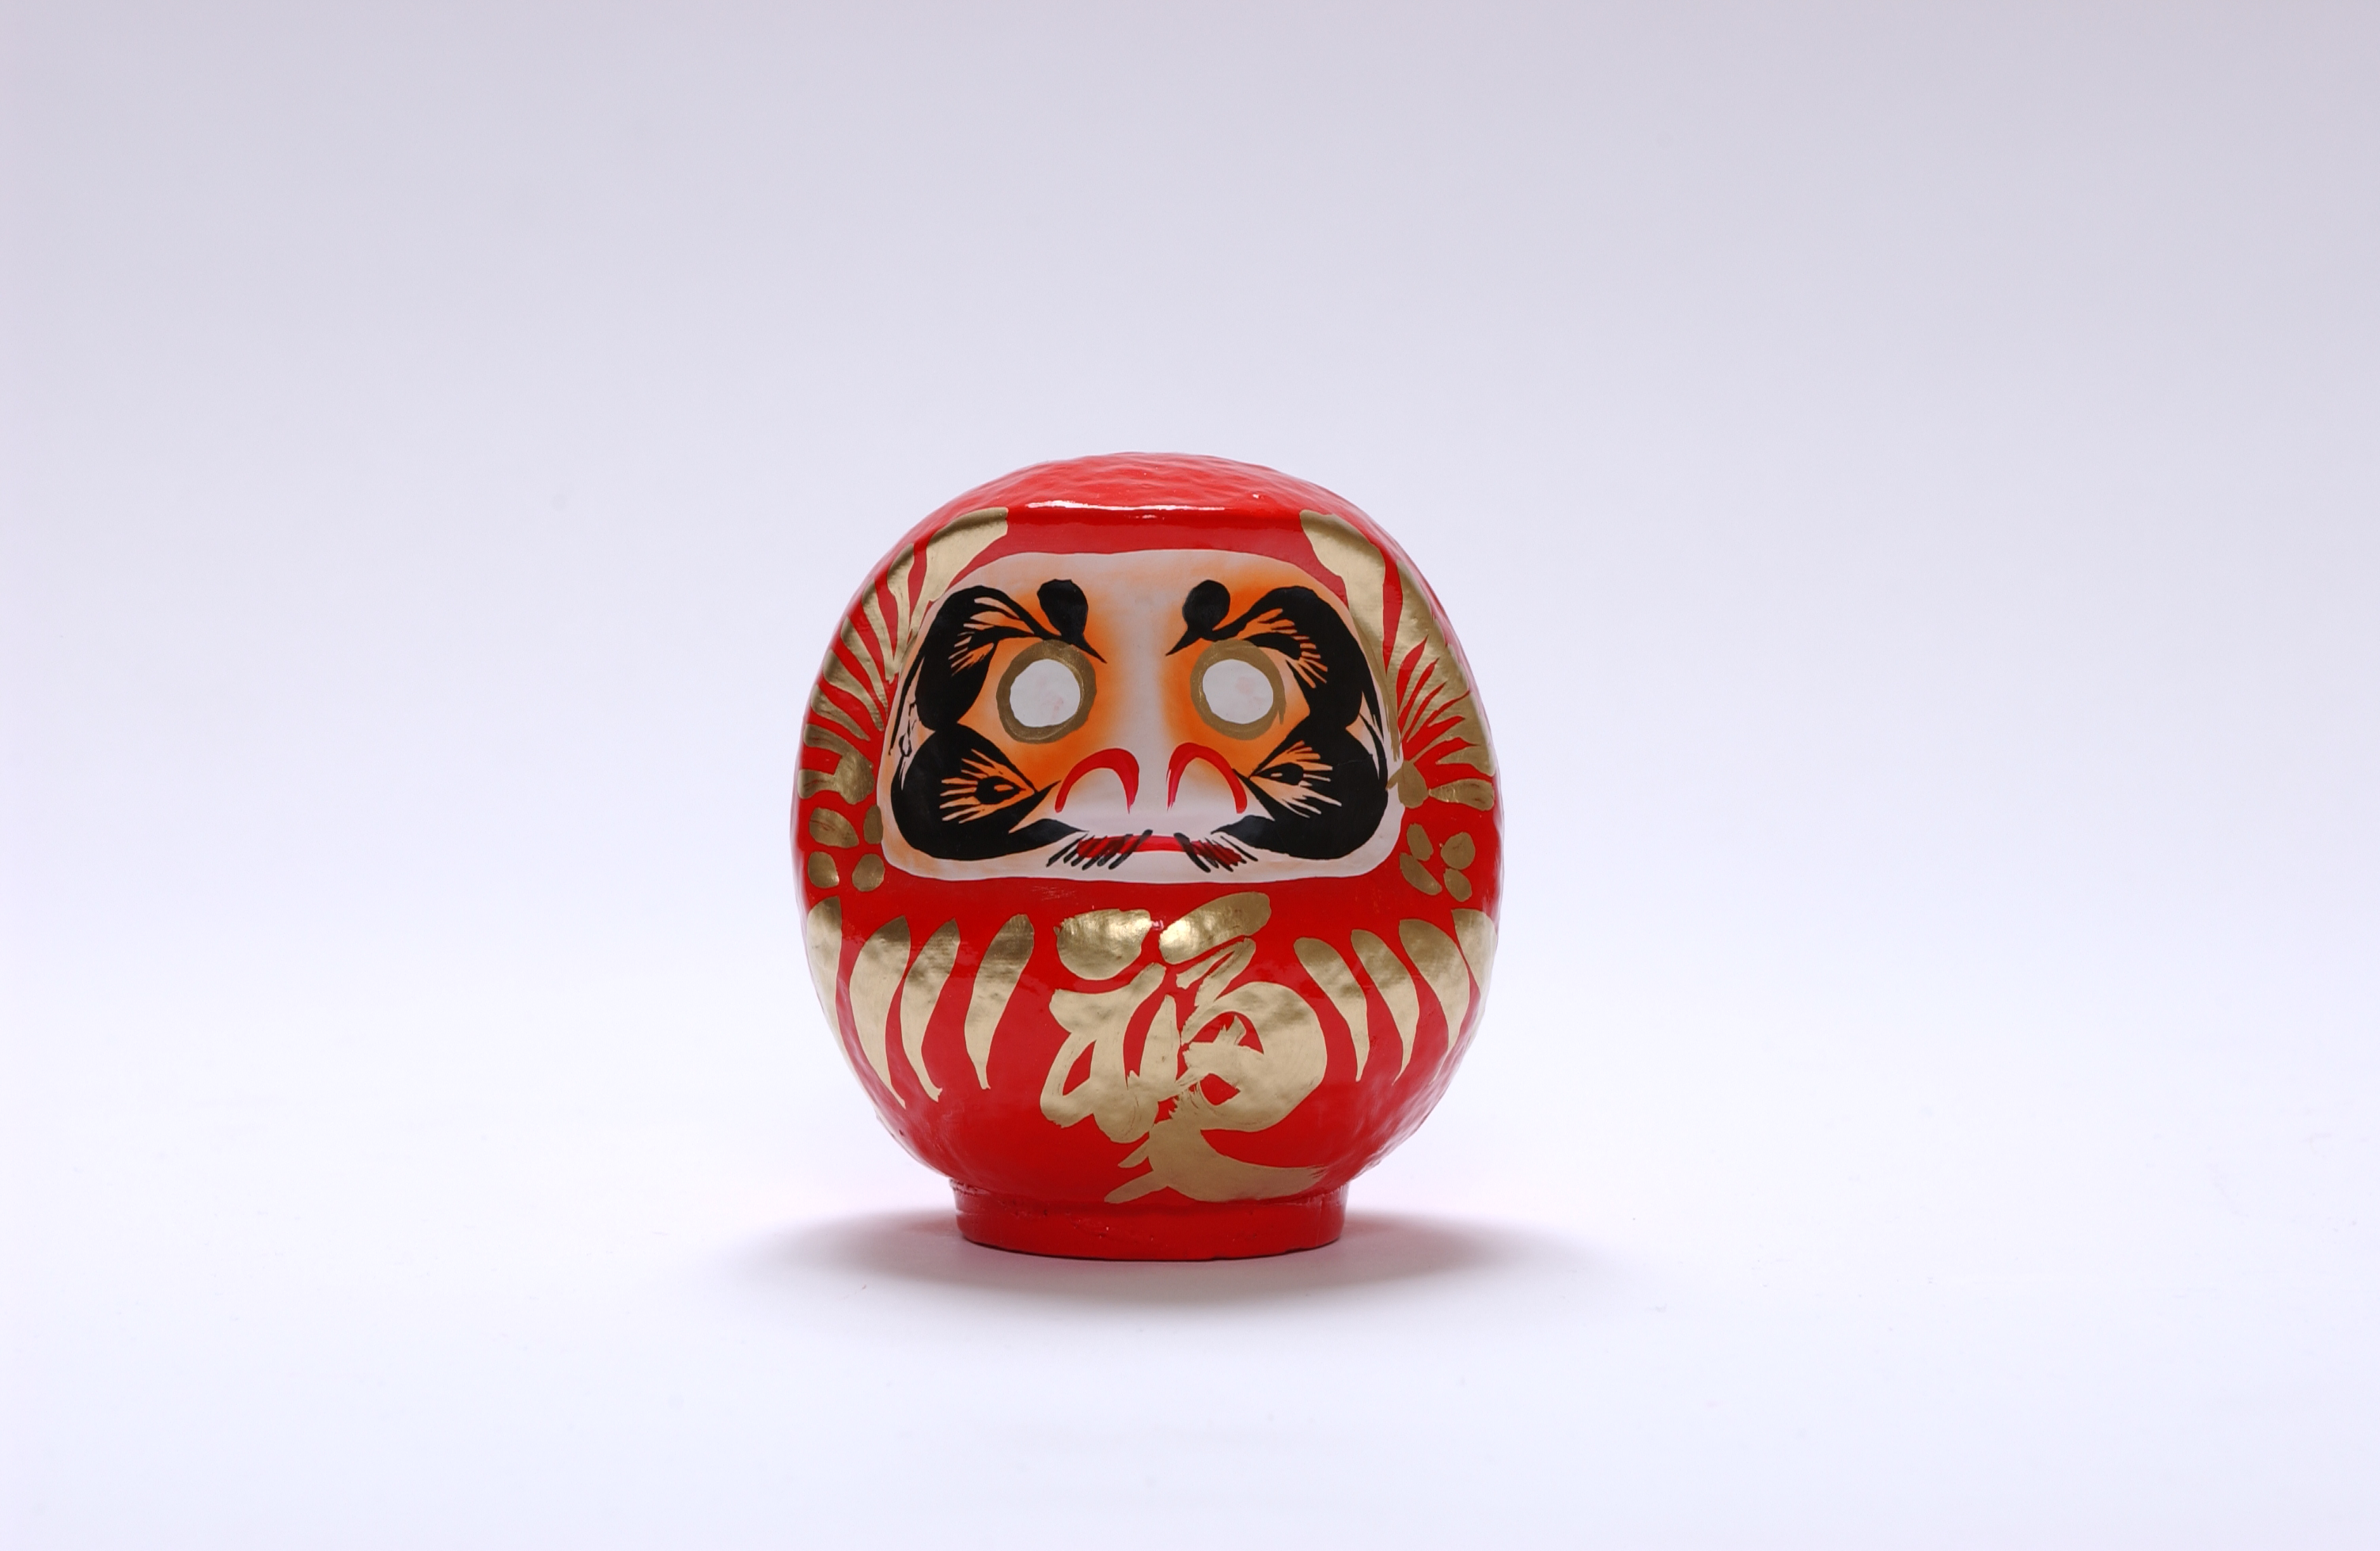 what does the japanese symbol mean on daruma dolls? | Yahoo